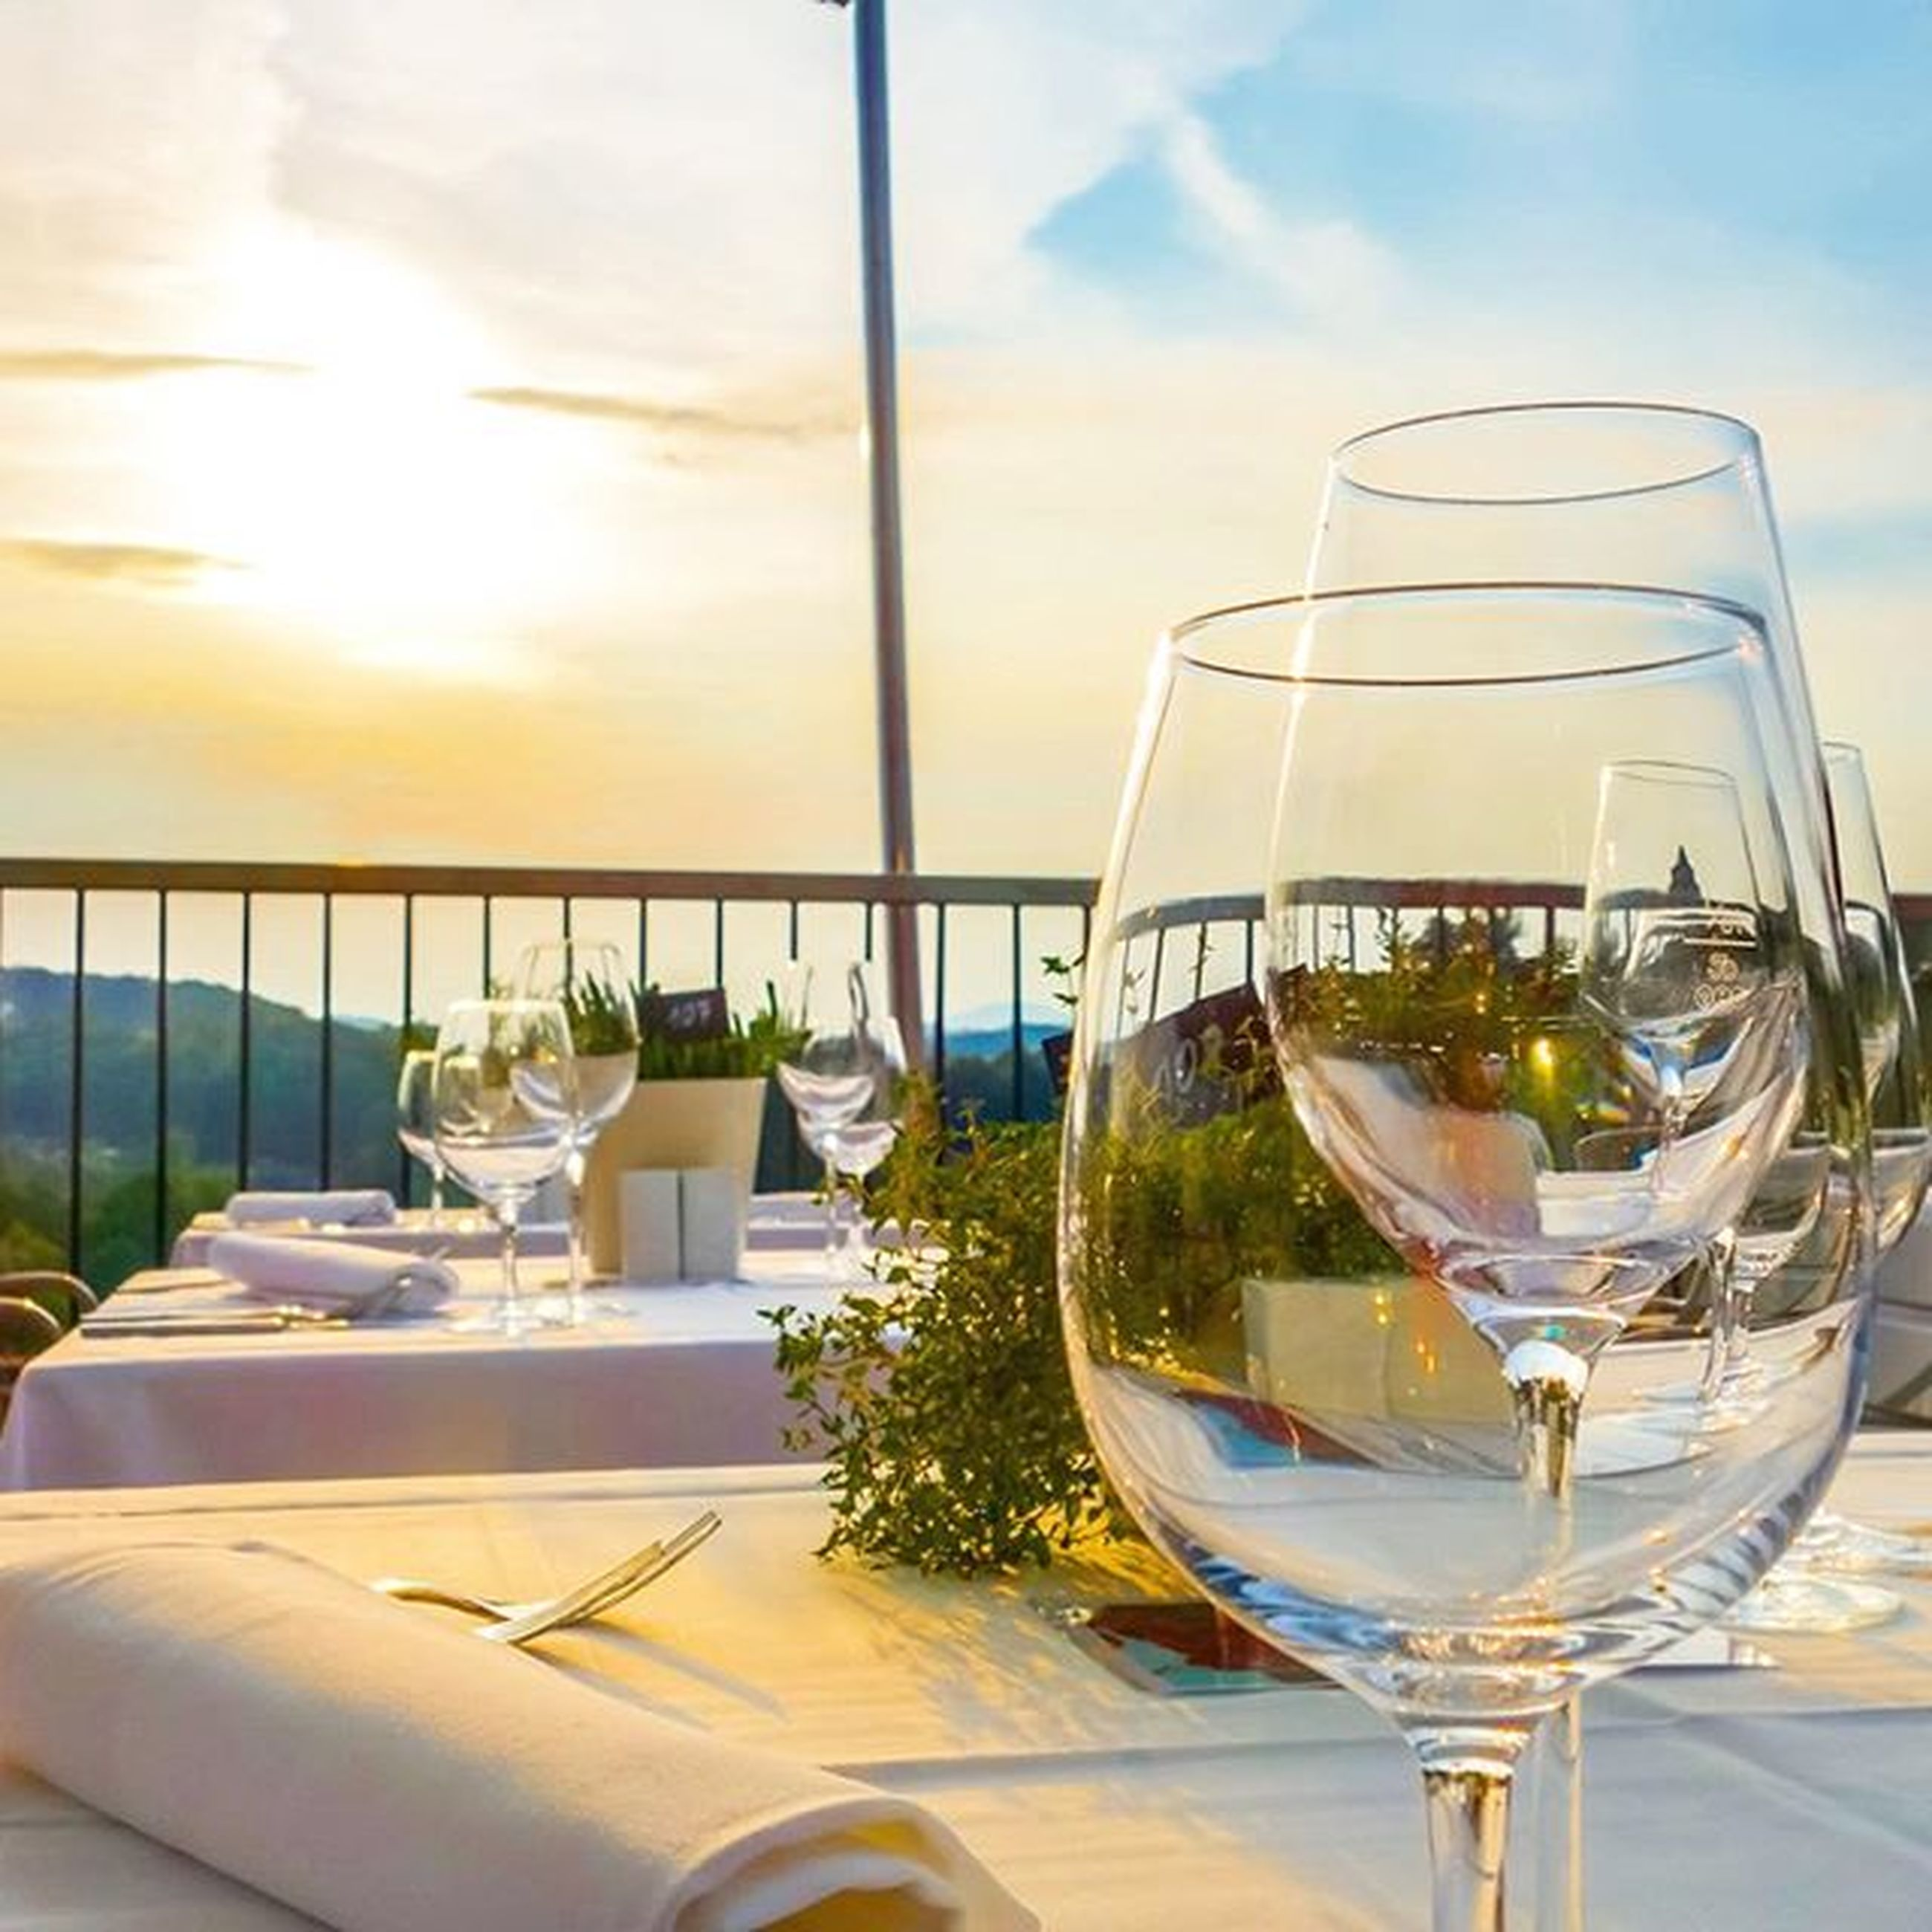 table, glass - material, sky, sea, drink, transparent, restaurant, drinking glass, window, chair, indoors, sunlight, food and drink, water, horizon over water, glass, wineglass, cloud - sky, refreshment, day